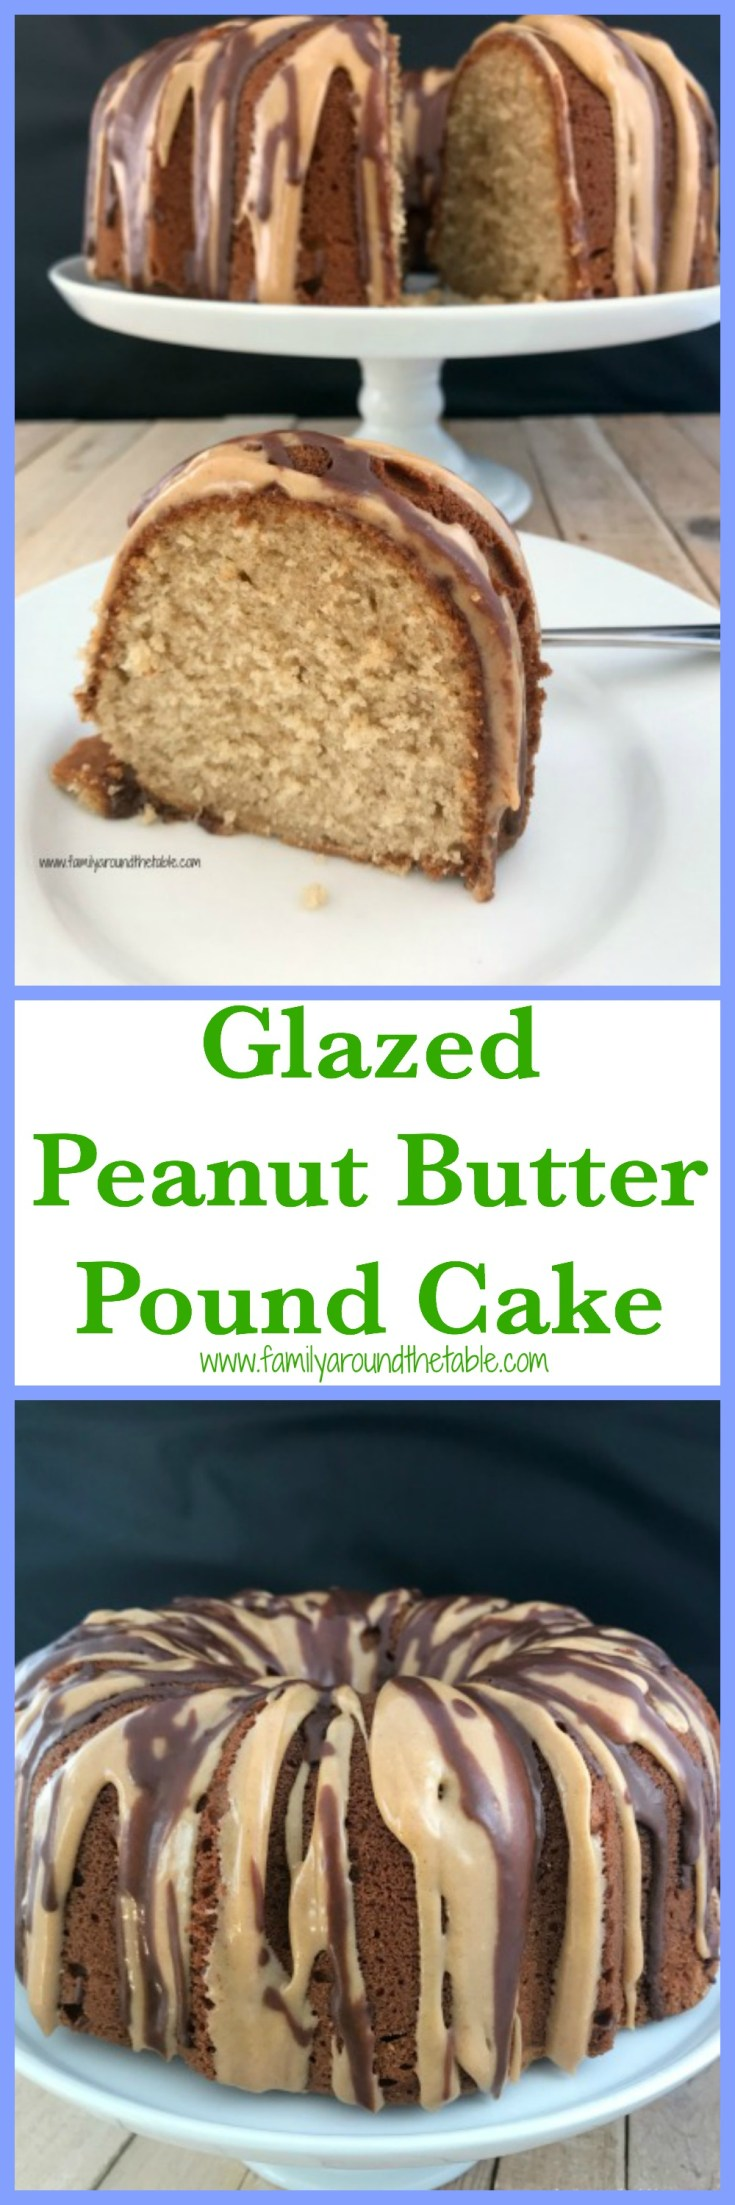 Peanut butter and chocolate is a winning combination in this delicious glazed peanut butter pound cake.